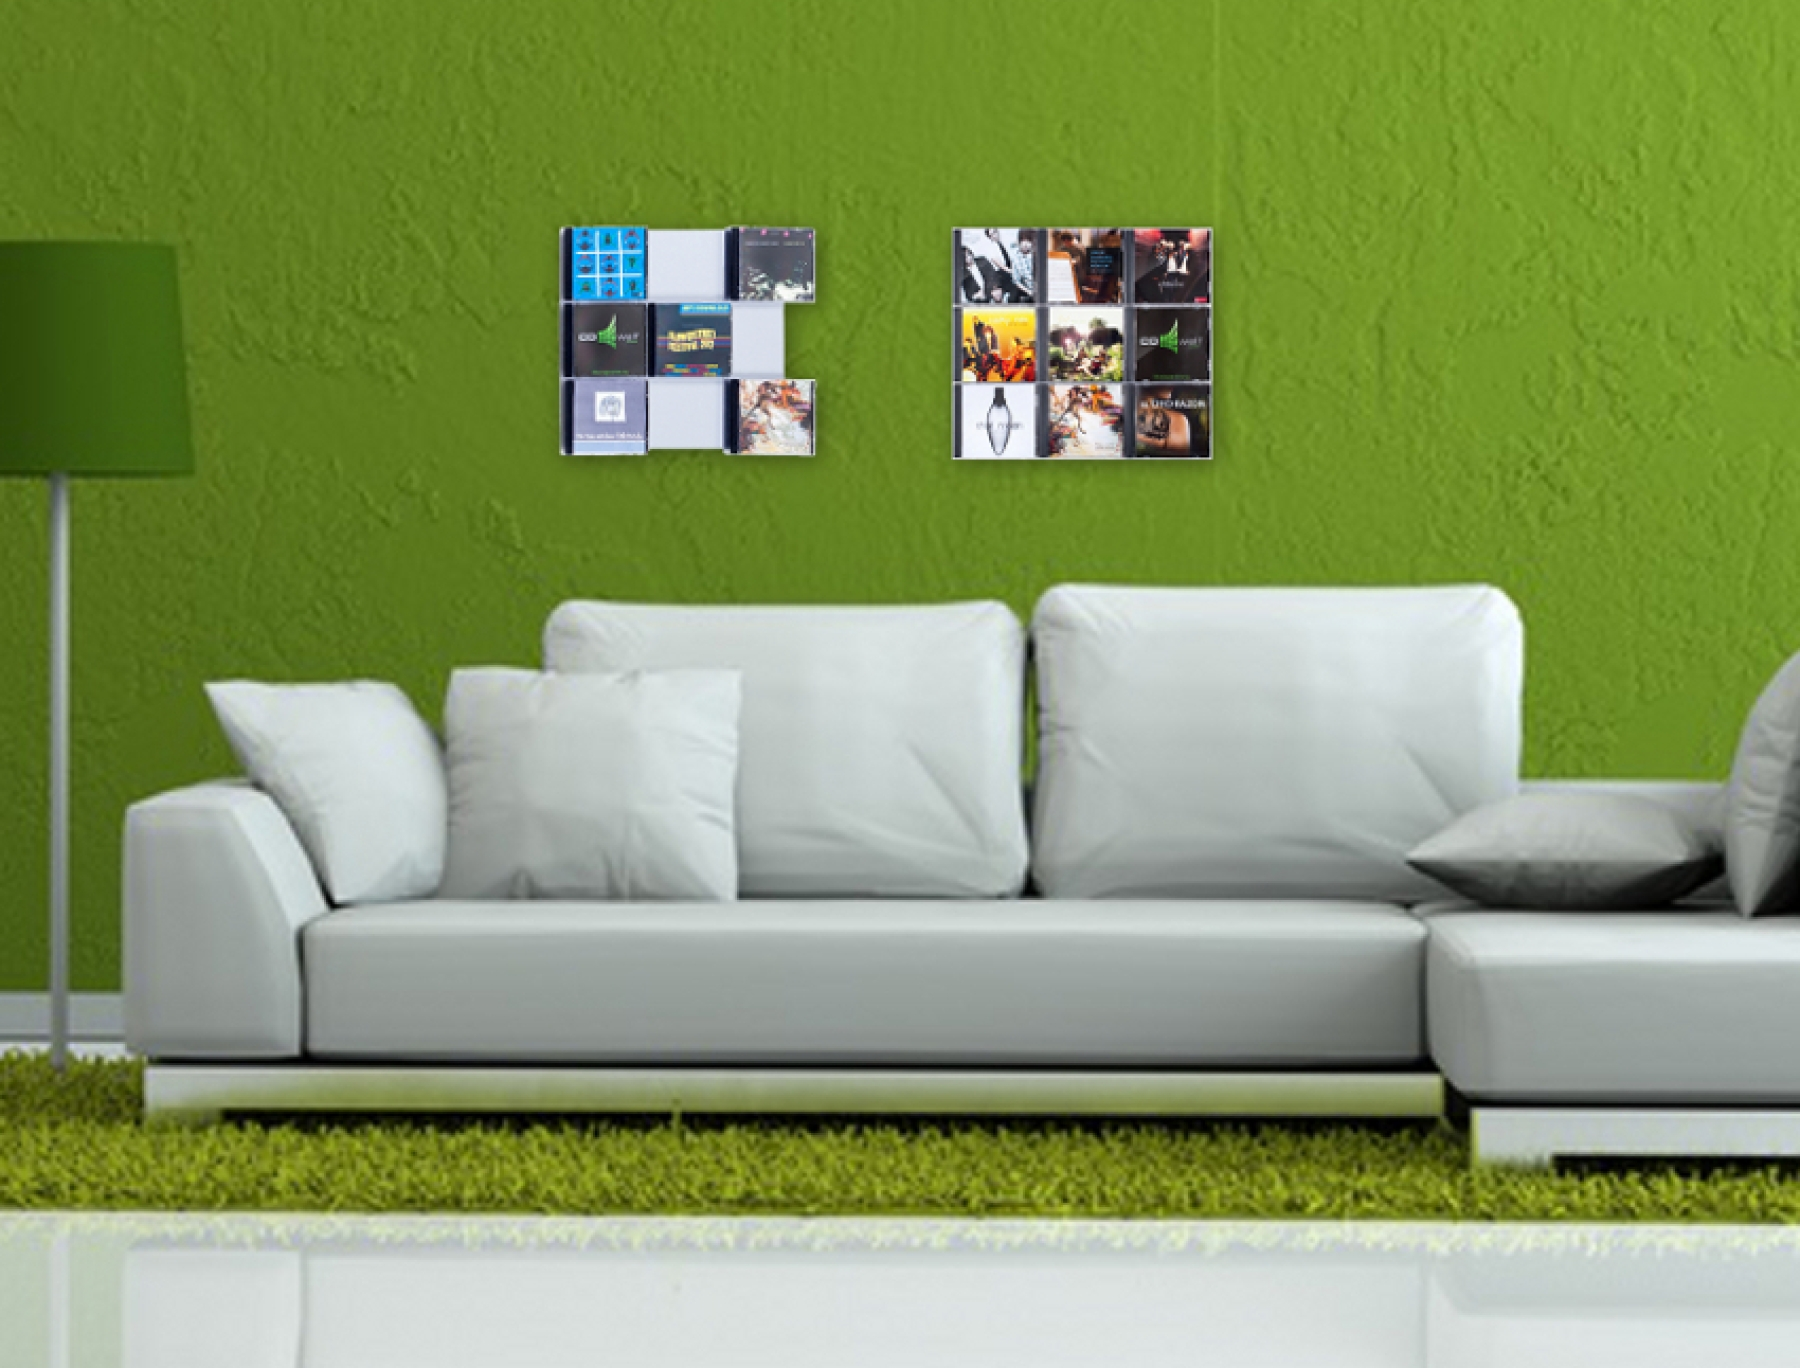 The picture shows our CD Wall3x3 wall mounted in the living room on the sofa